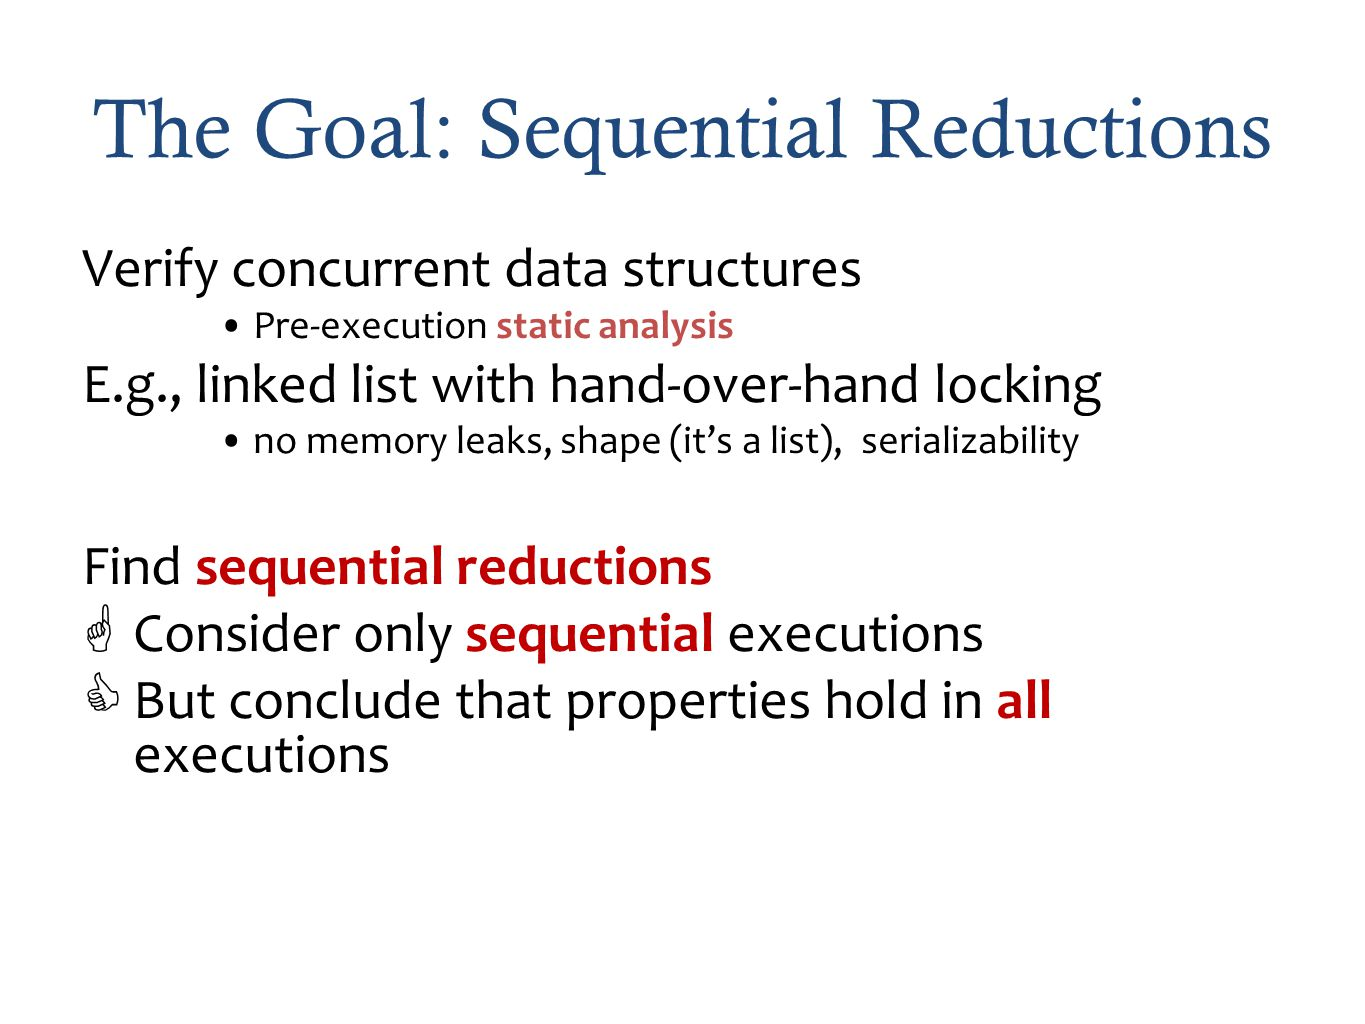 The Goal: Sequential Reductions Verify concurrent data structures Pre-execution static analysis E.g., linked list with hand-over-hand locking no memory leaks, shape (its a list), serializability Find sequential reductions Consider only sequential executions But conclude that properties hold in all executions